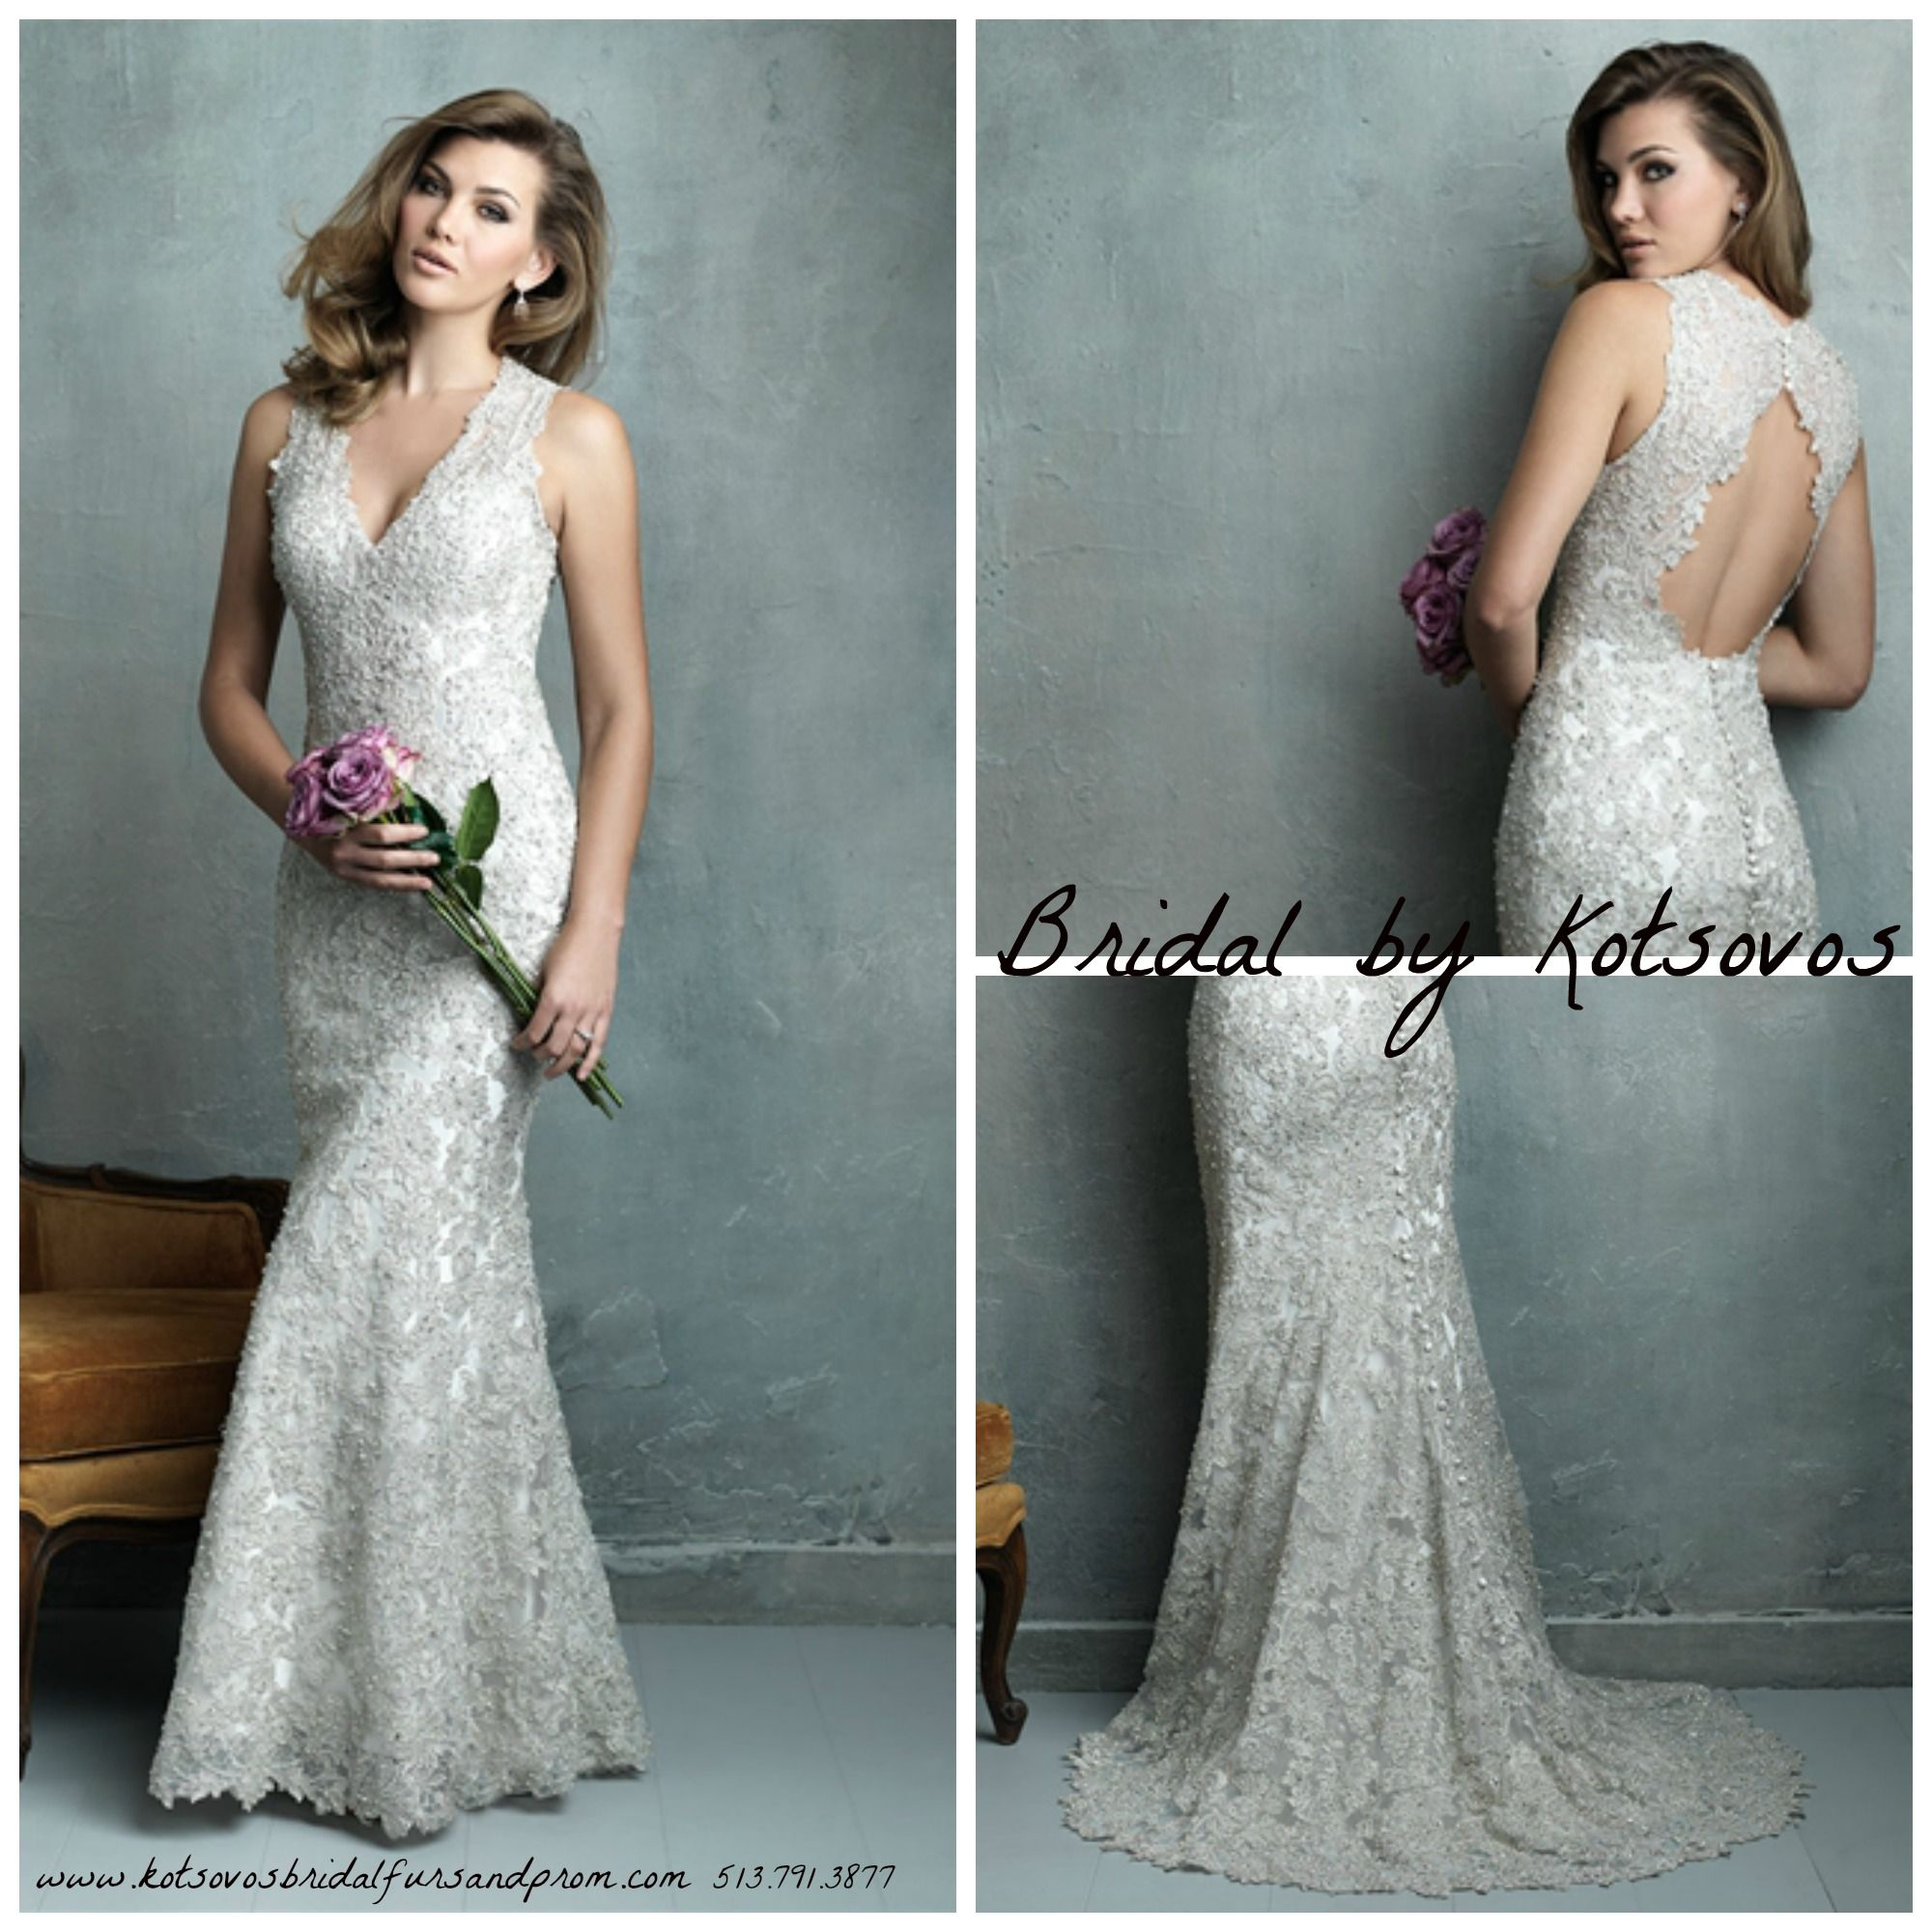 This show-stopping ornate gown is perfect for the bride wanting a ...